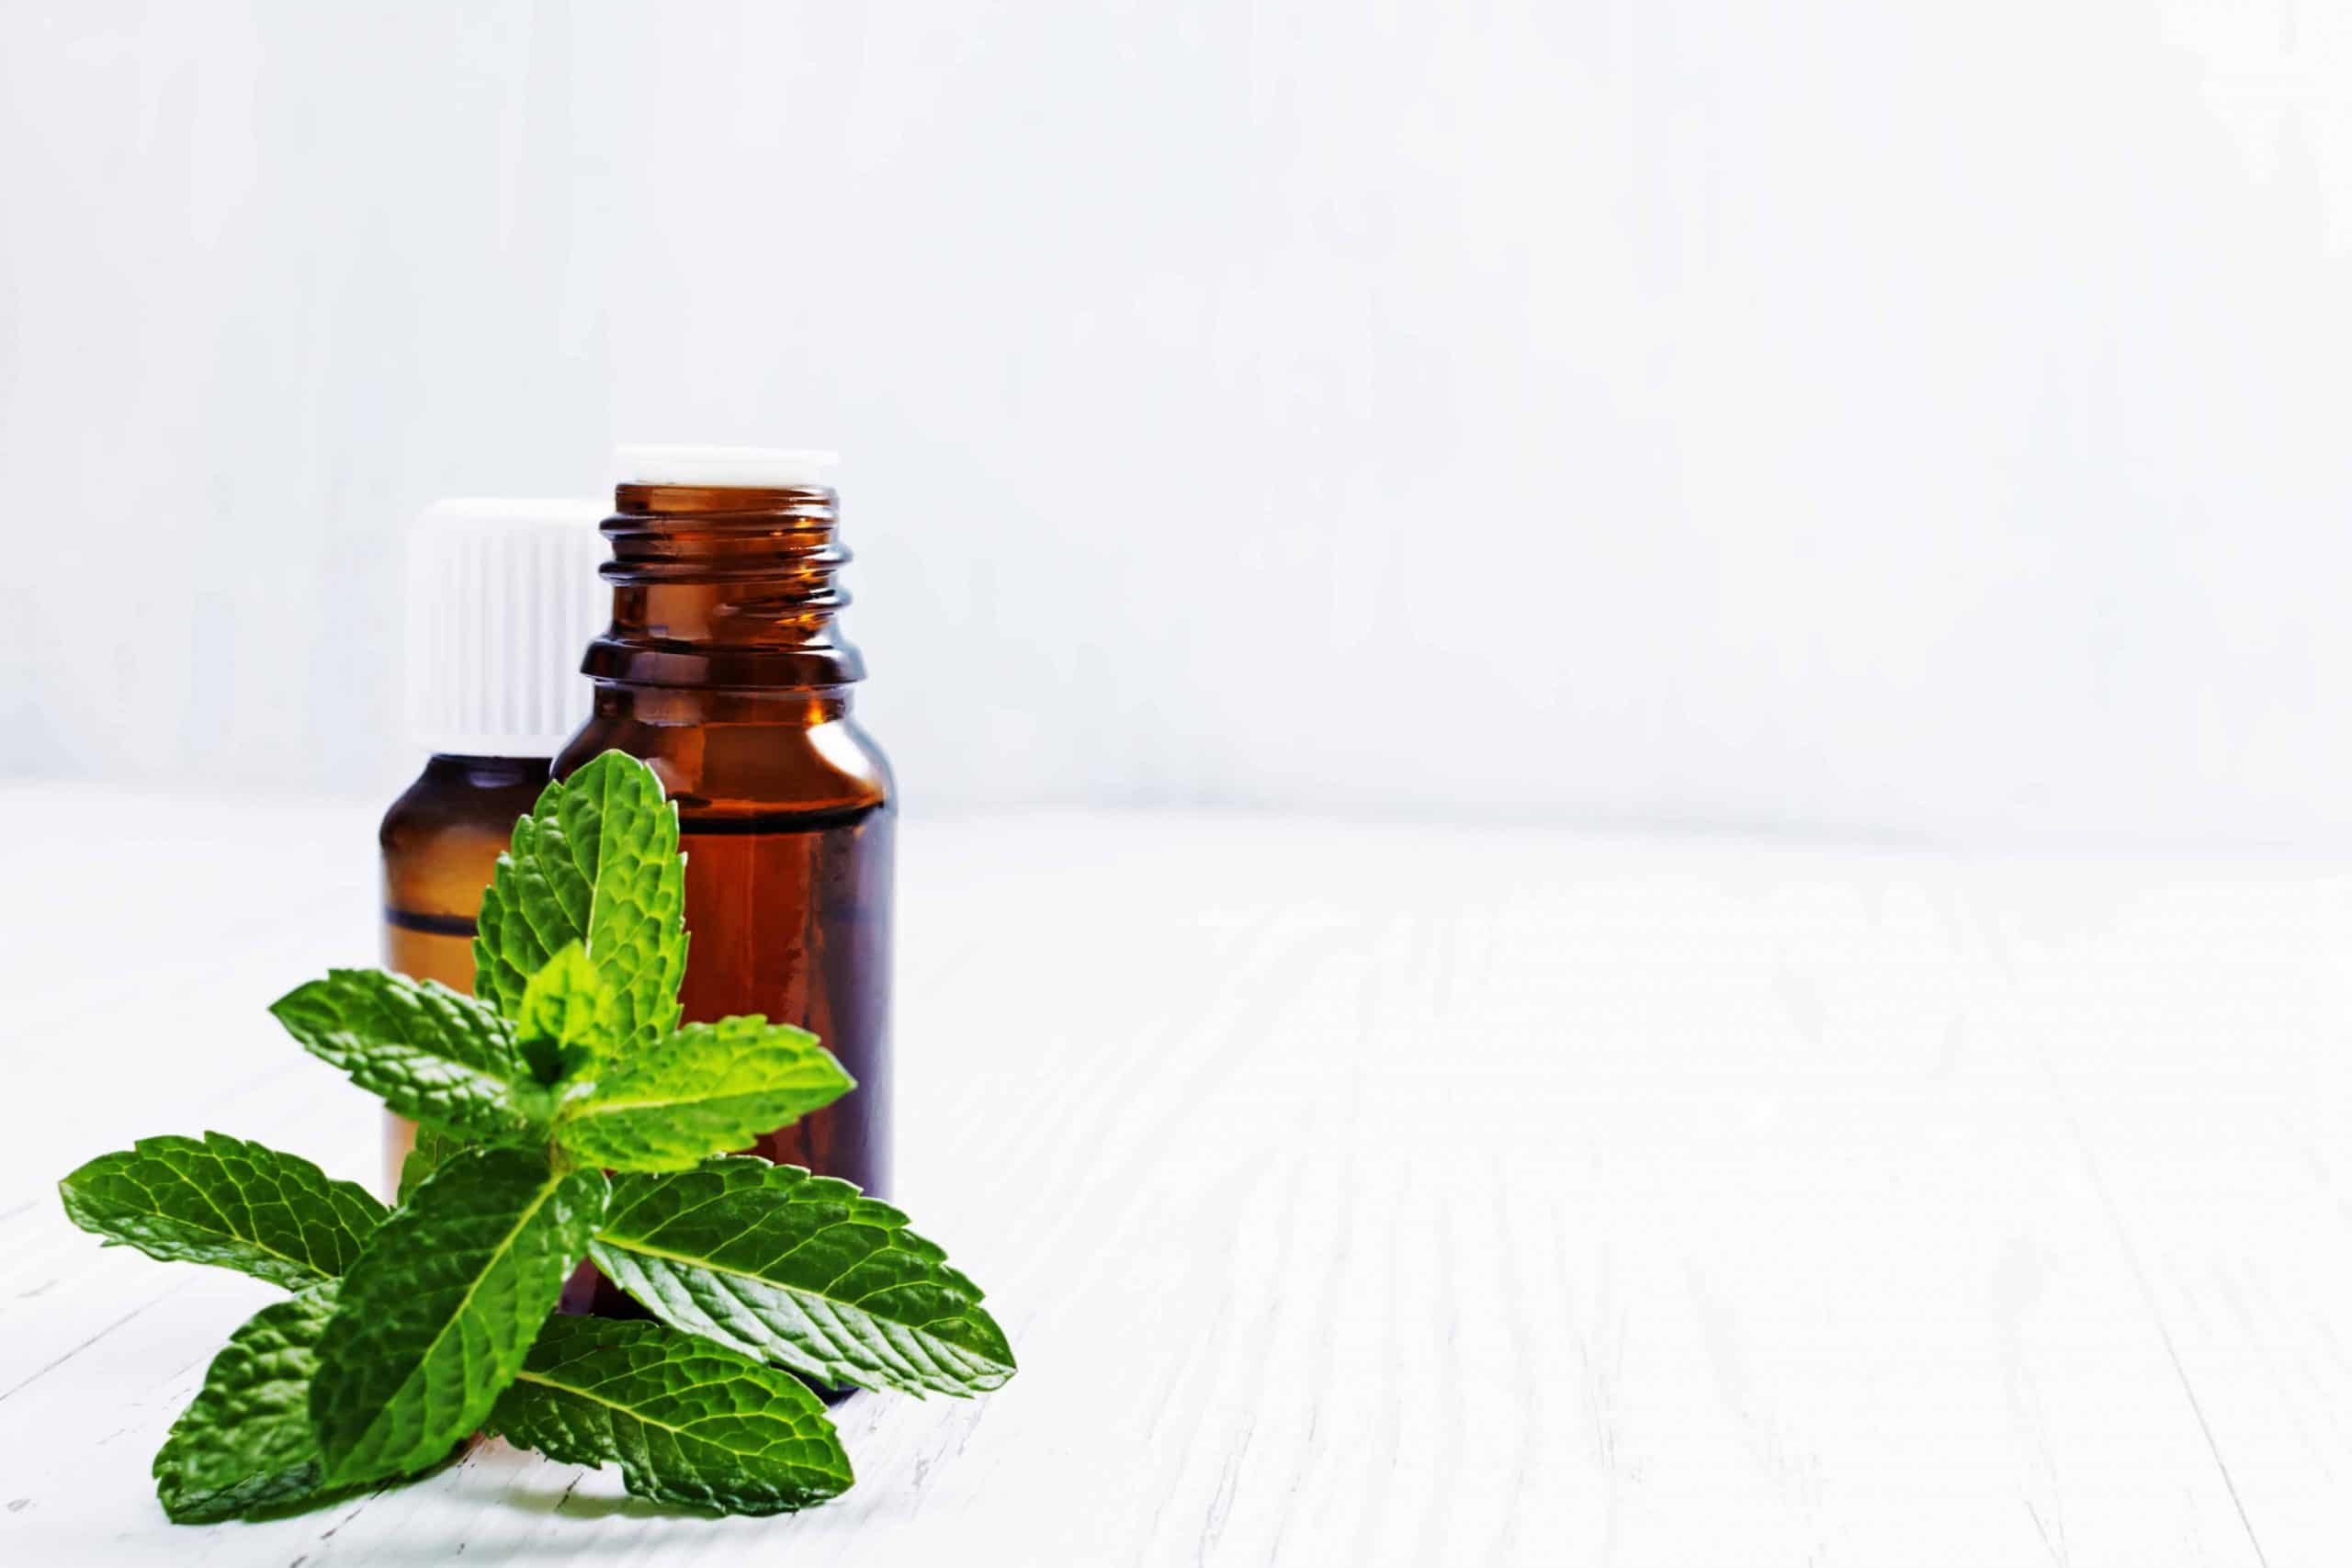 How to use peppermint oil - natural recipes